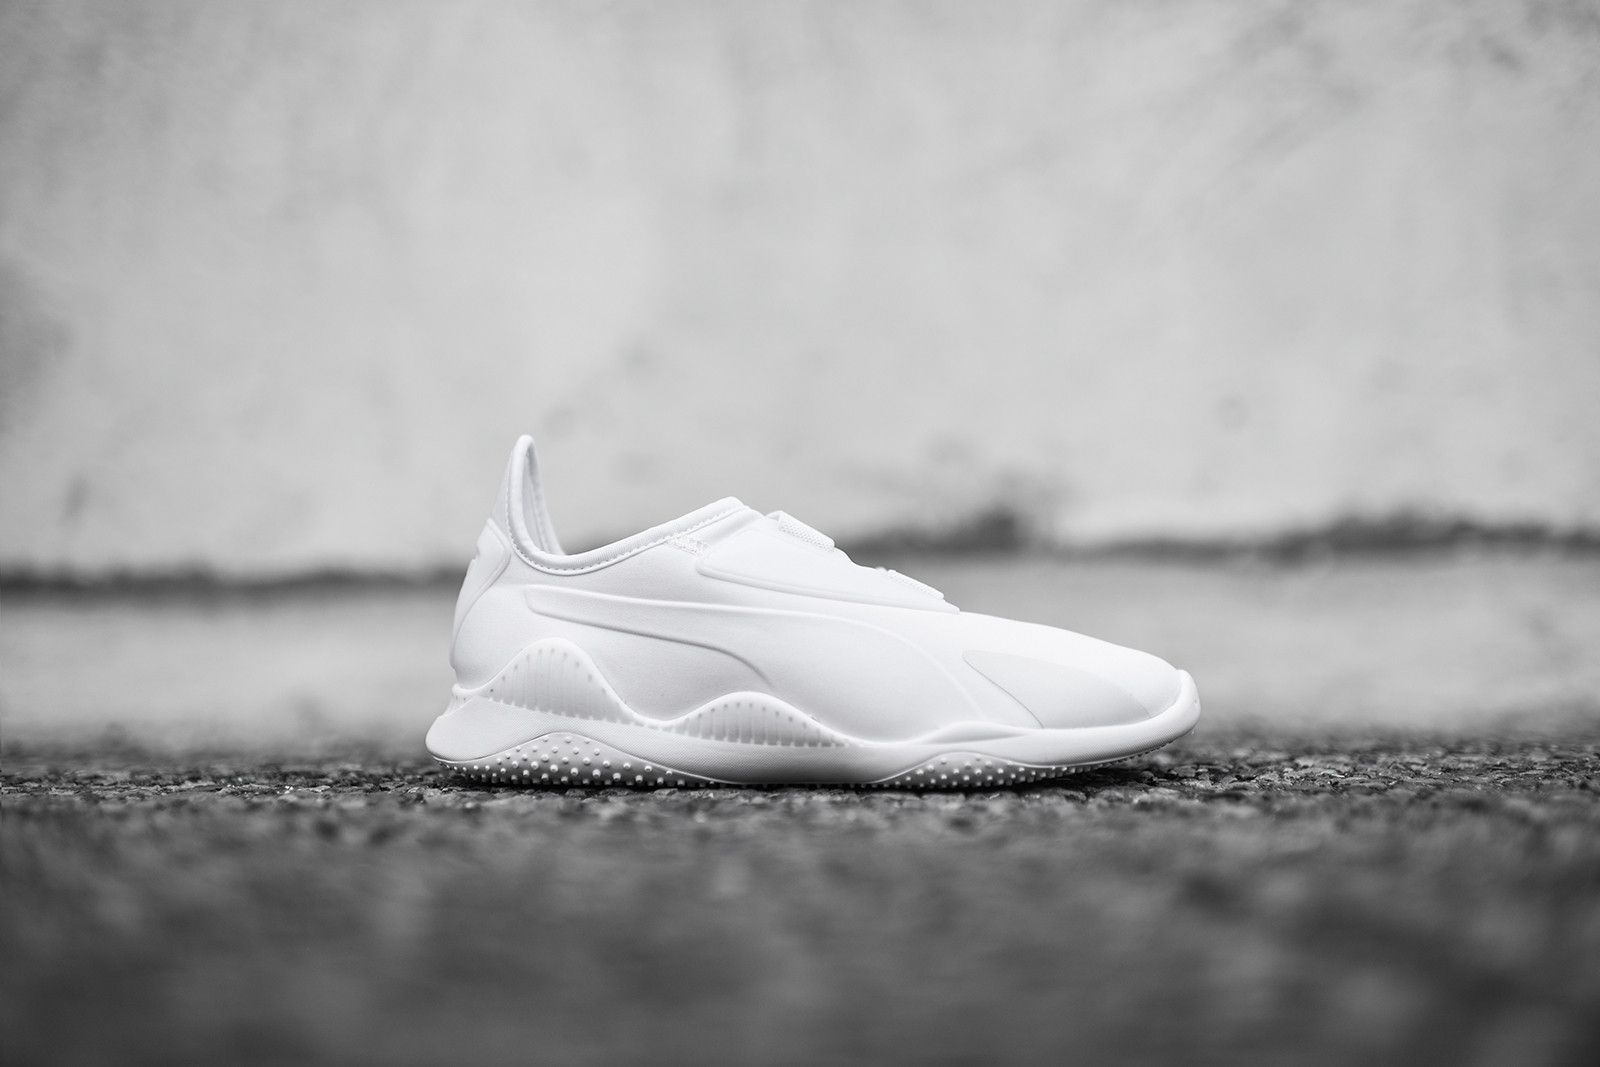 online retailer dd92b 1fb13 Puma releases the WMNS-exclusive Mostro model executed in an all-white  color scheme